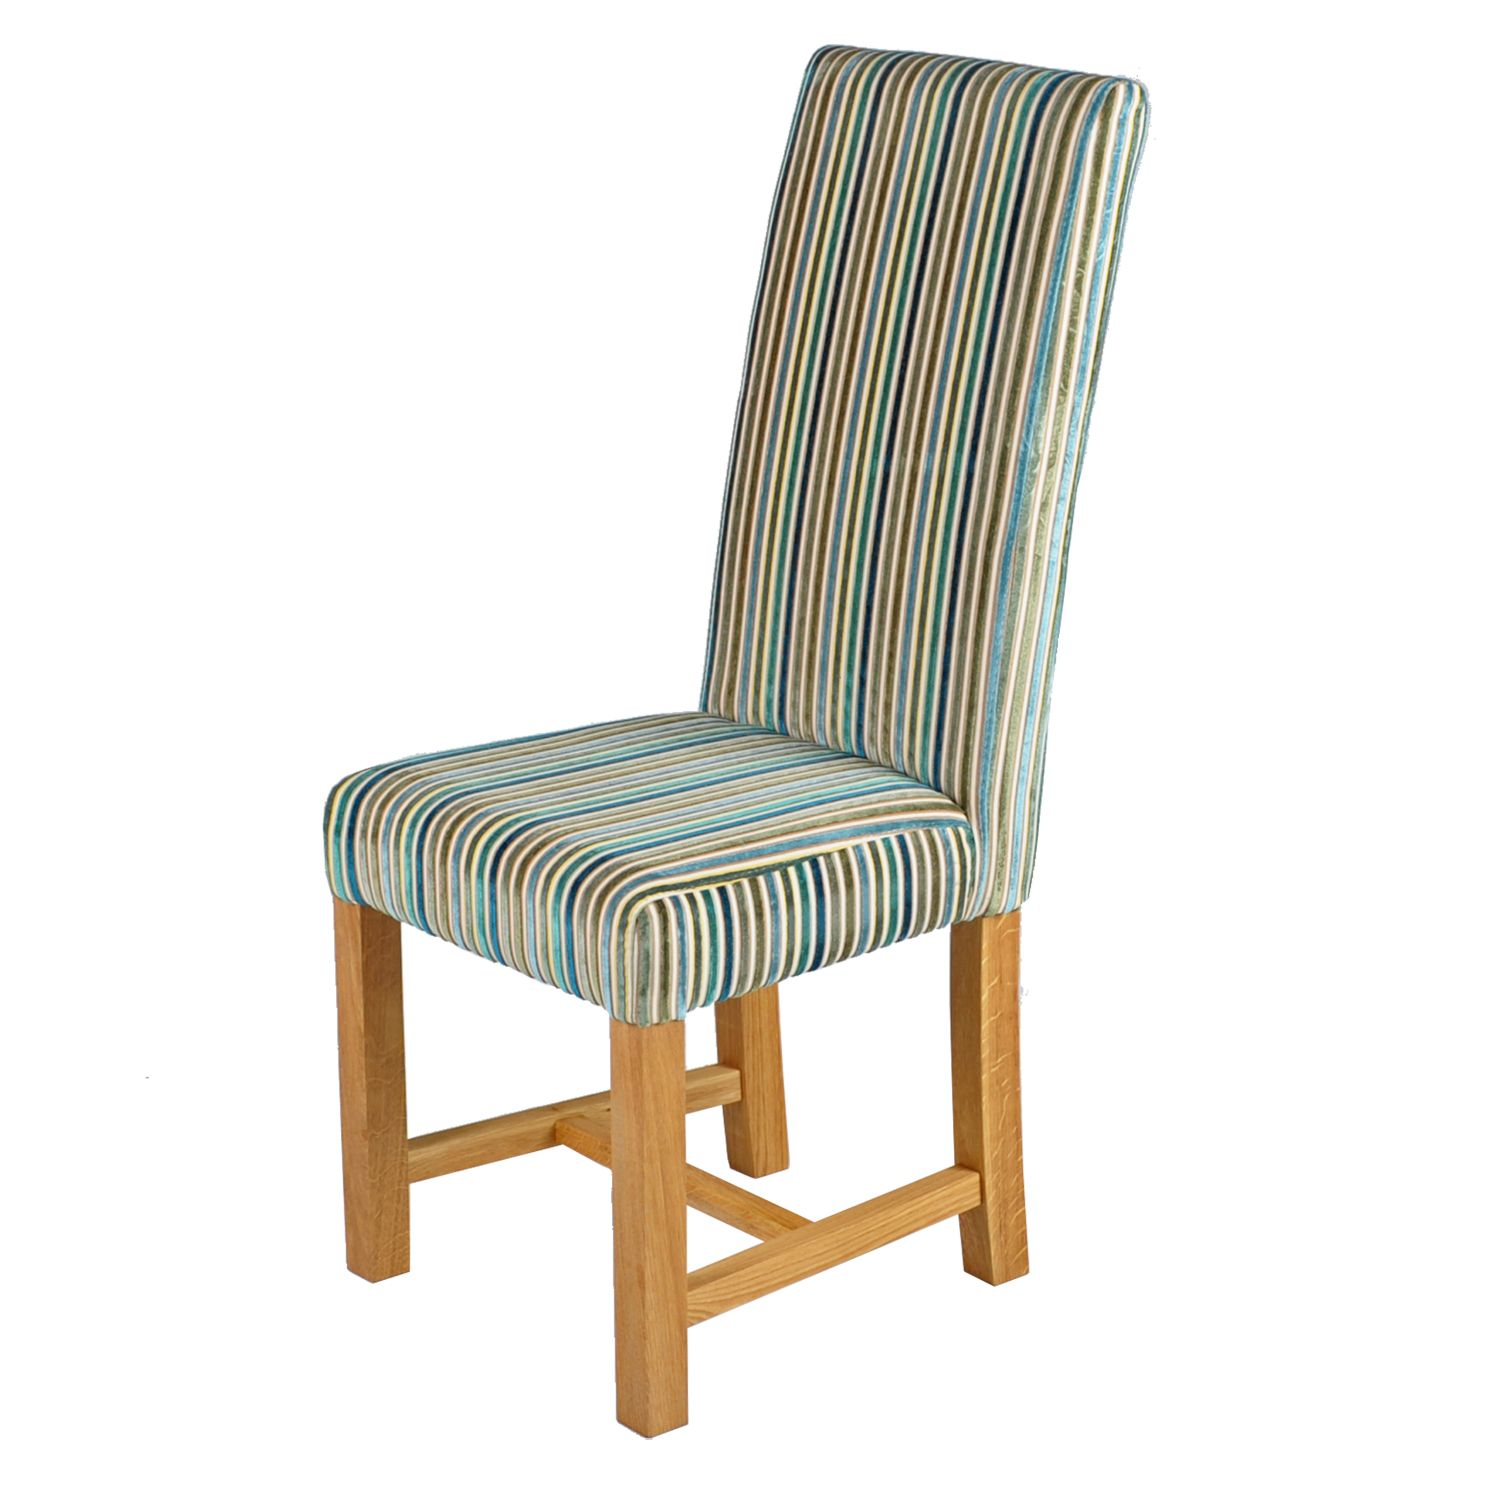 12 Types of Chairs for Your Different Rooms | Simple interior